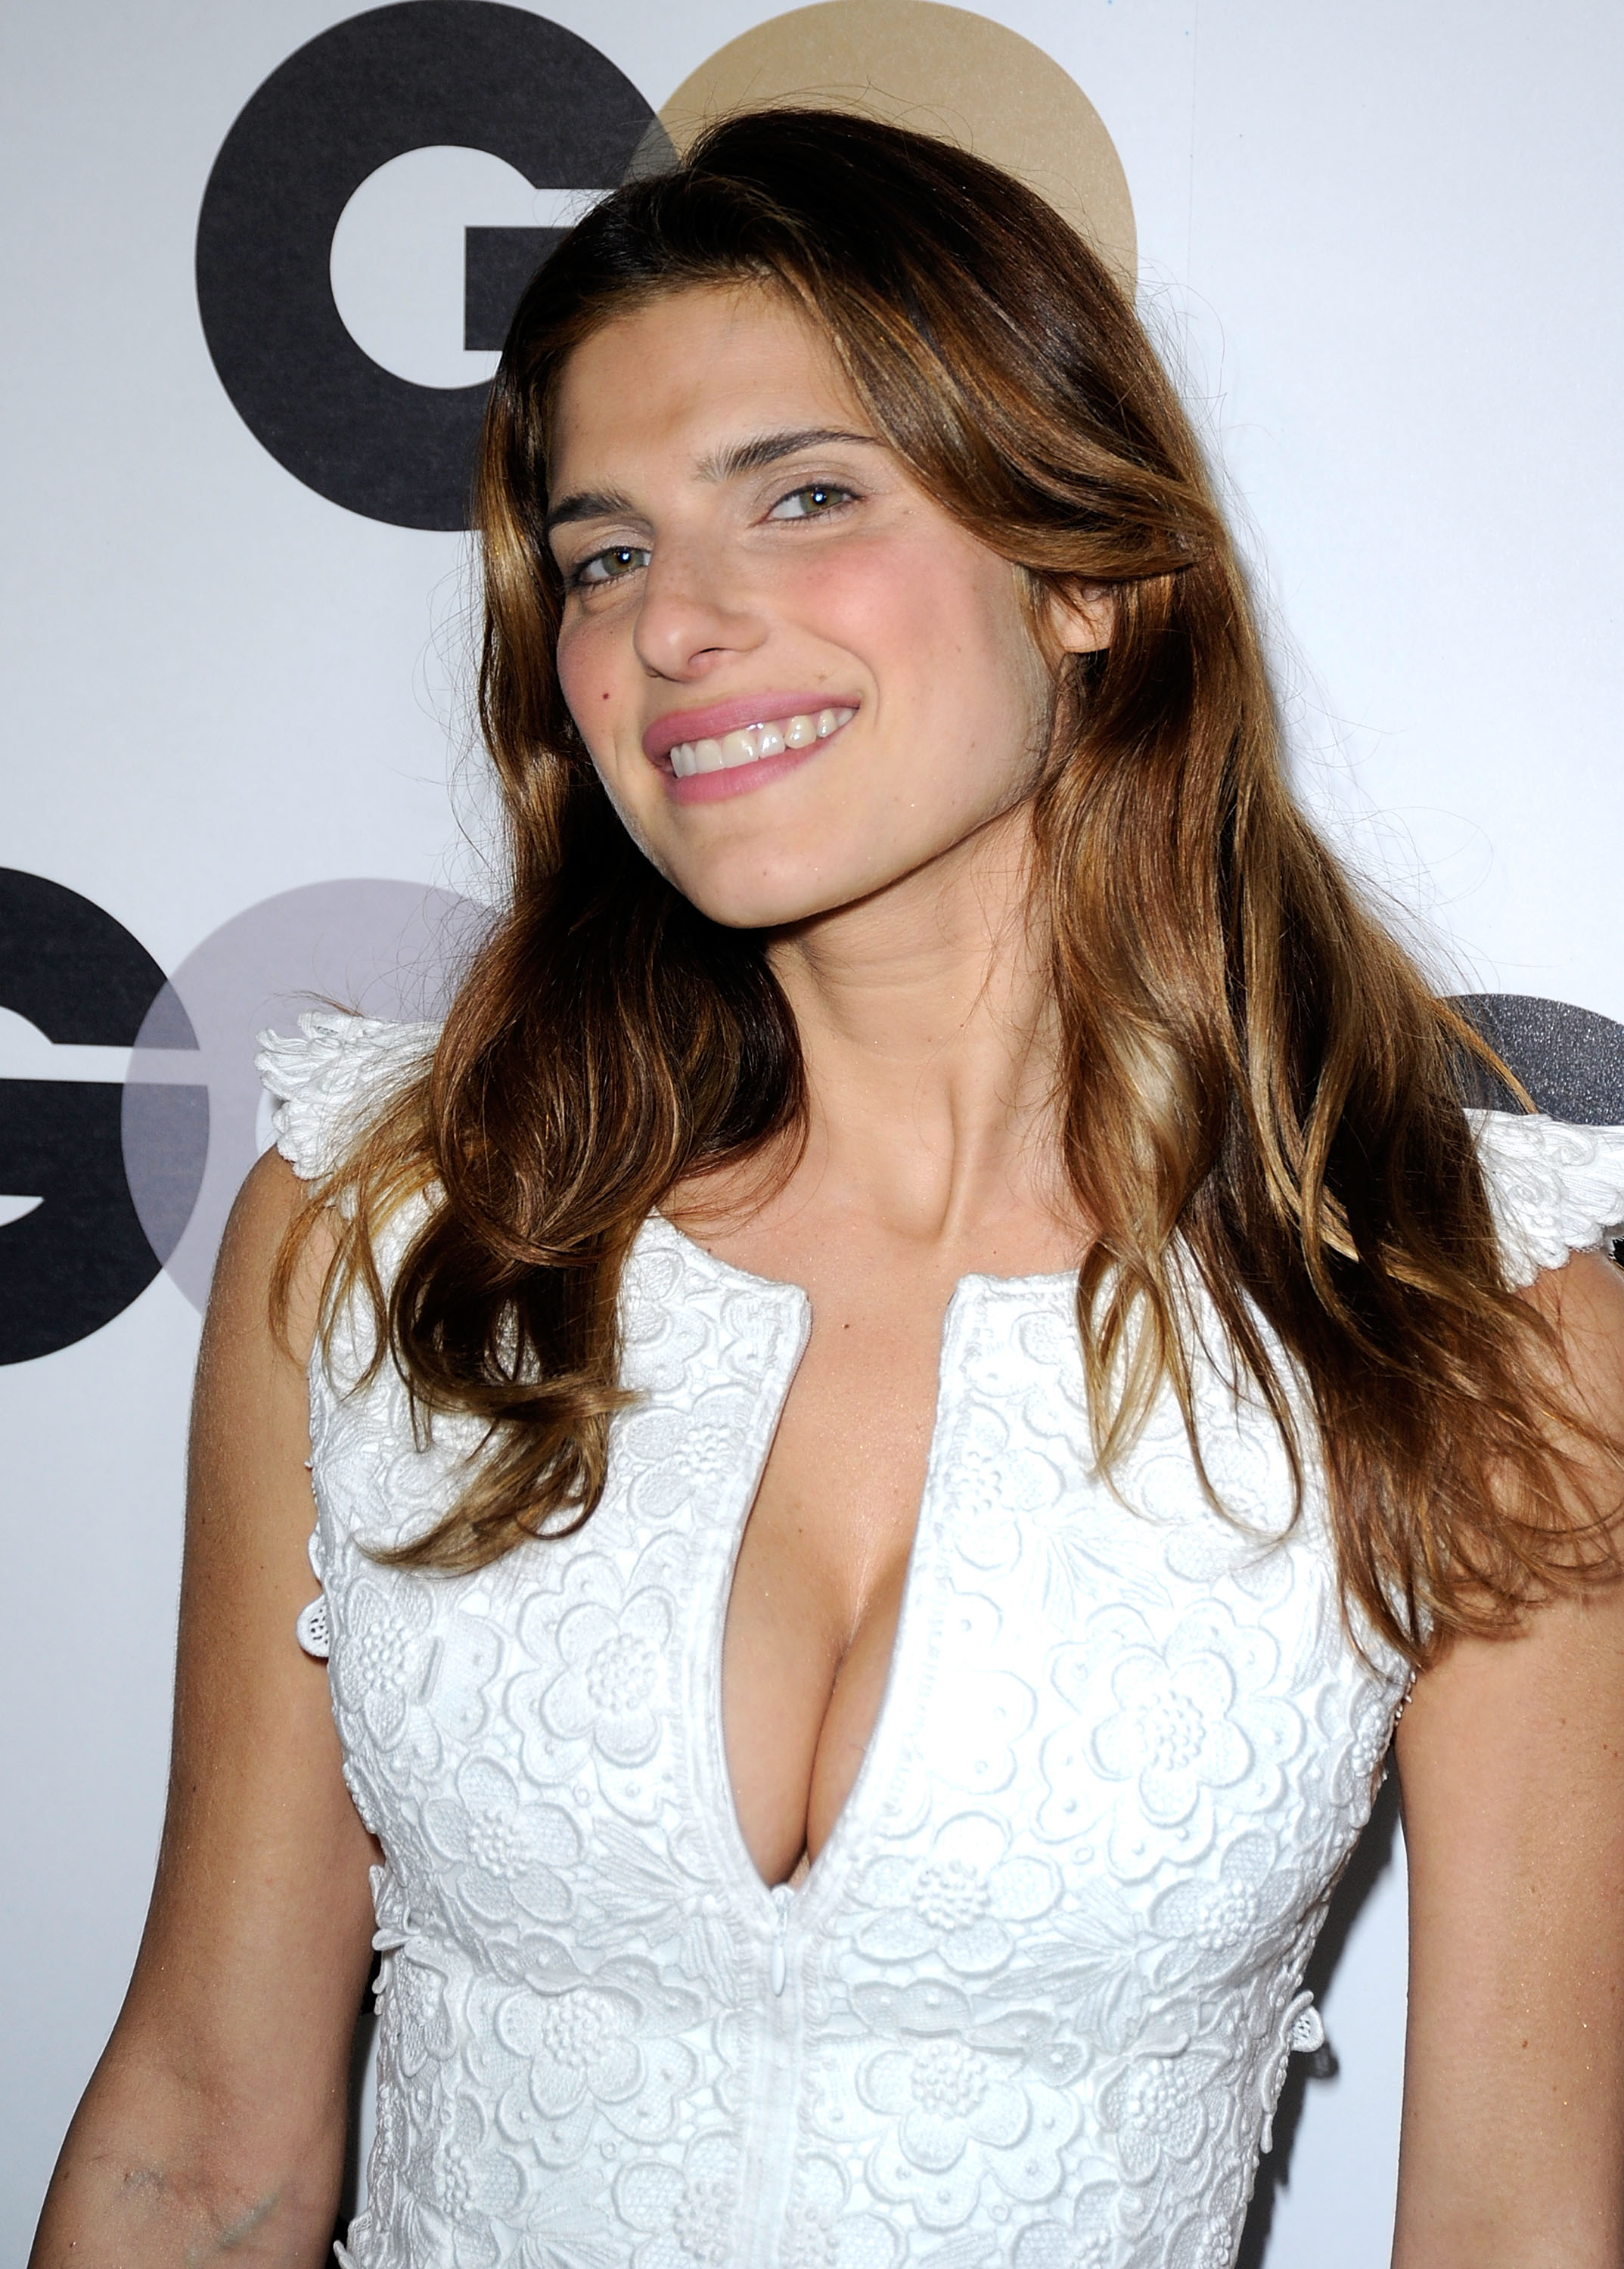 Lake Bell earned a  million dollar salary - leaving the net worth at 3 million in 2018